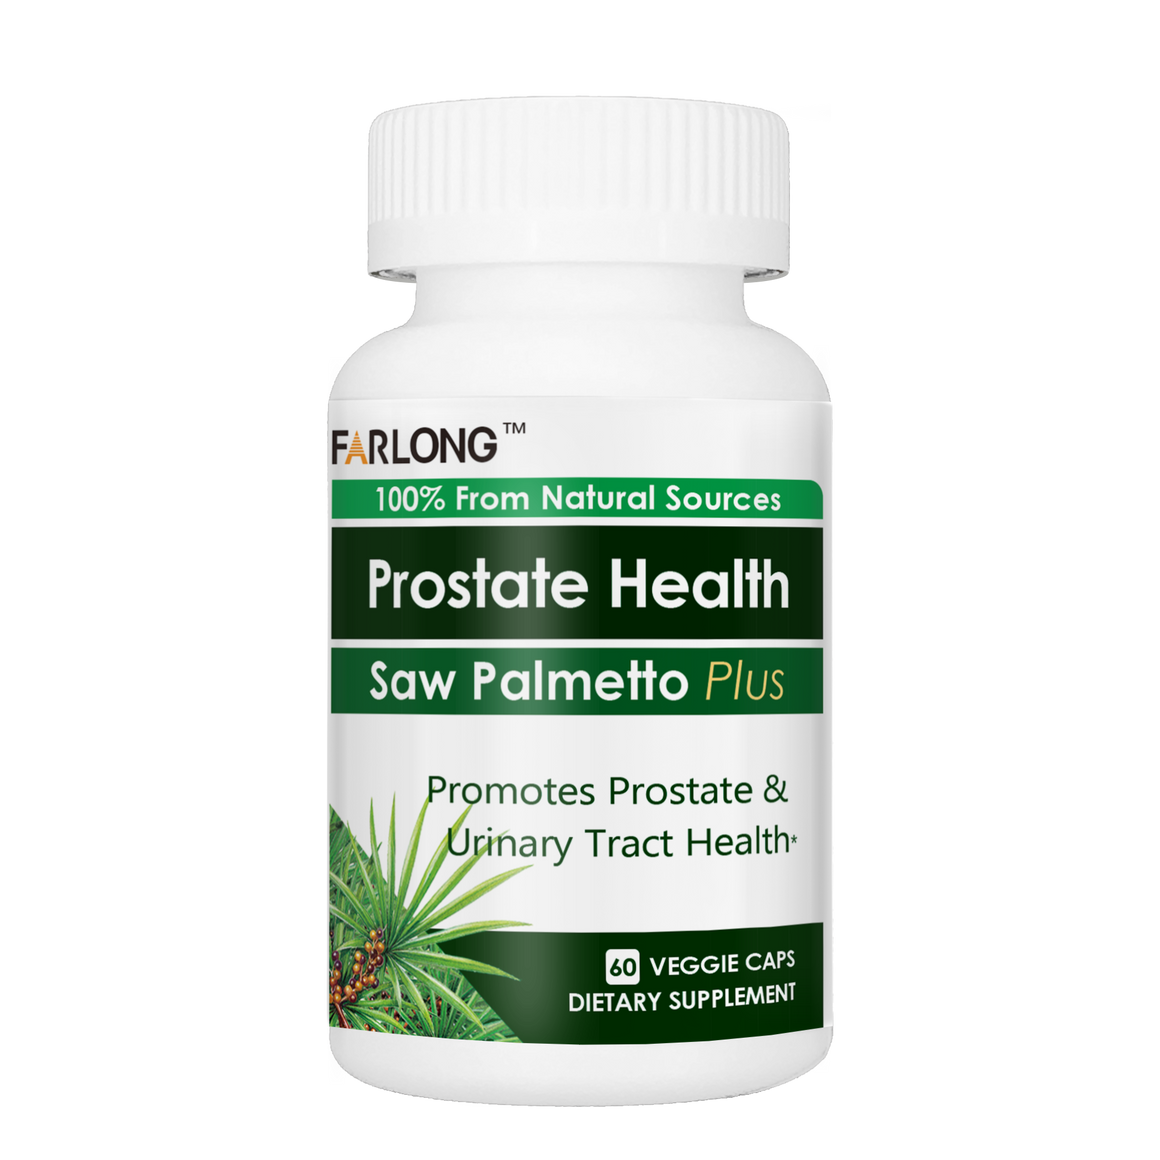 Saw Palmetto Plus